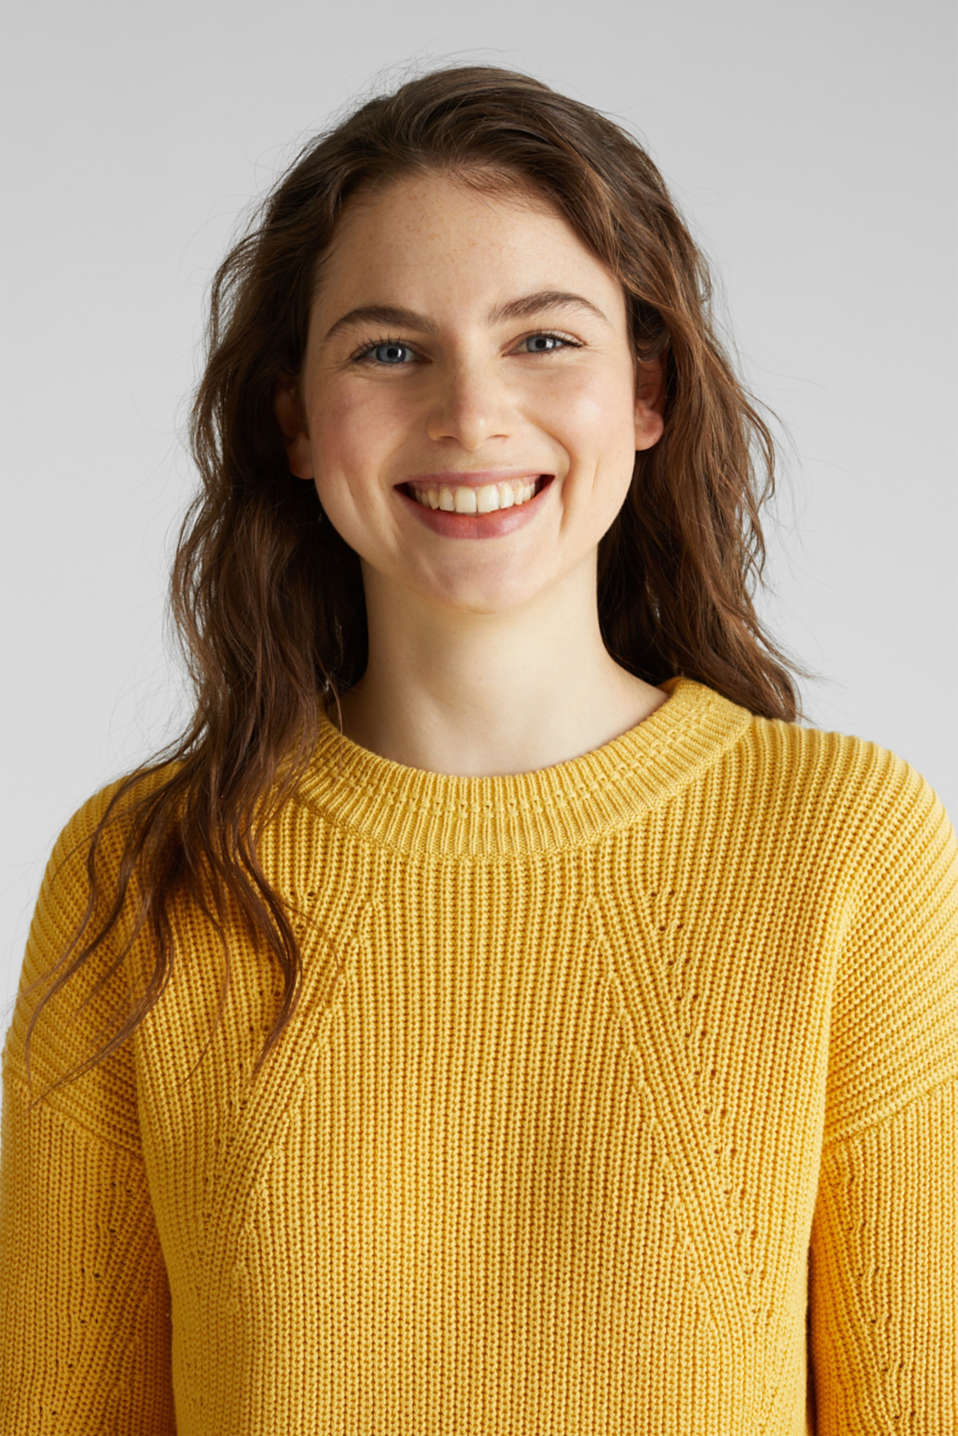 Jumper with textured details, 100% cotton, YELLOW, detail image number 4